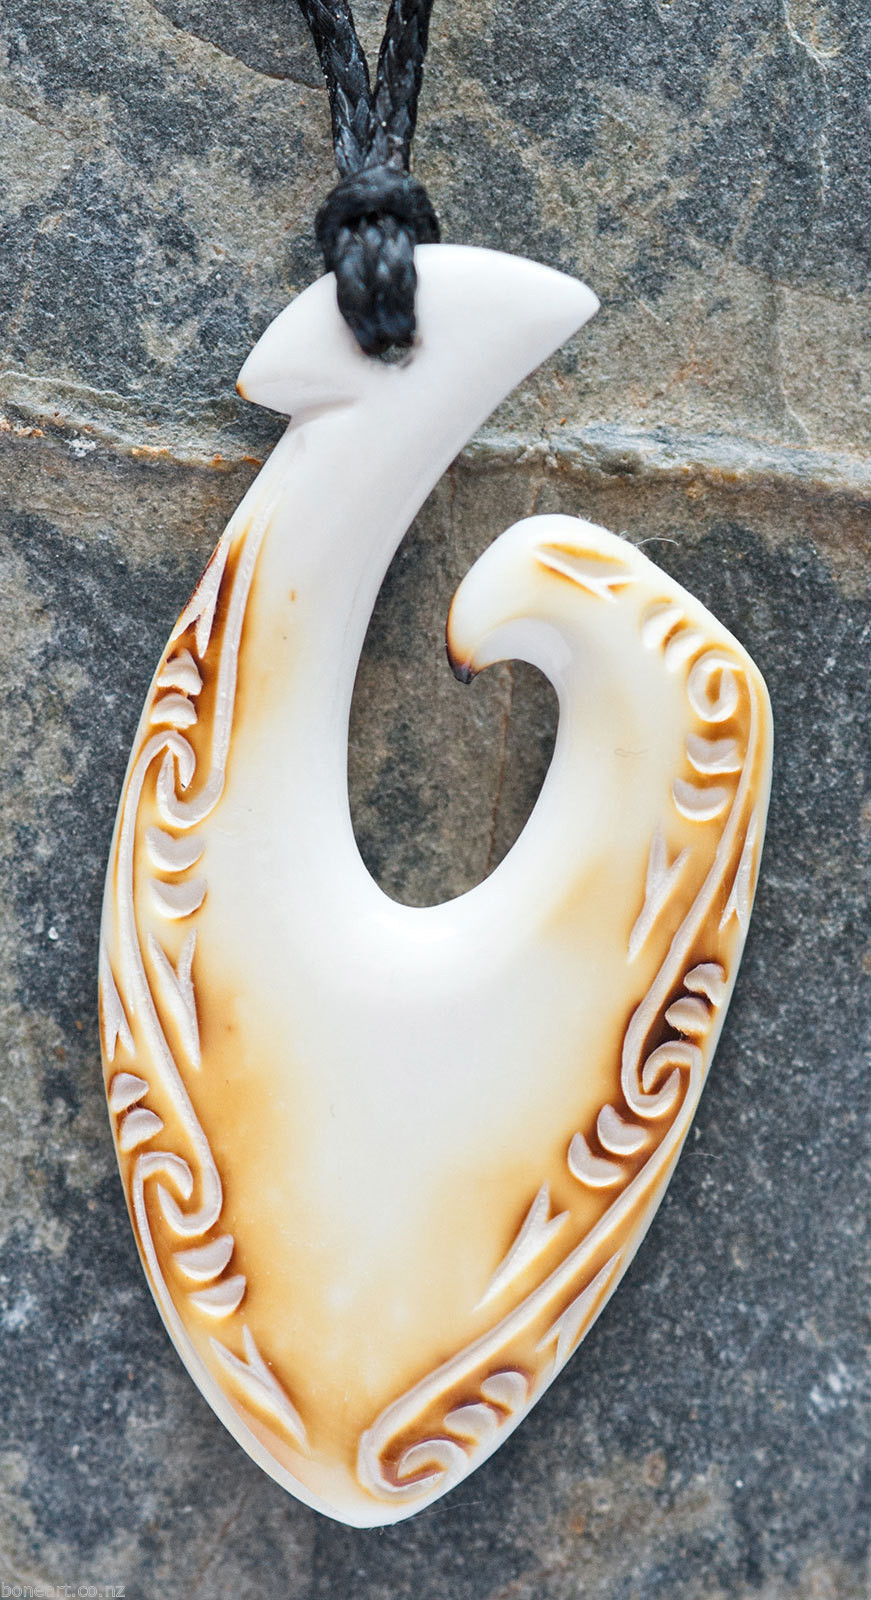 Maori matau hook bone carving pendant from new zealand